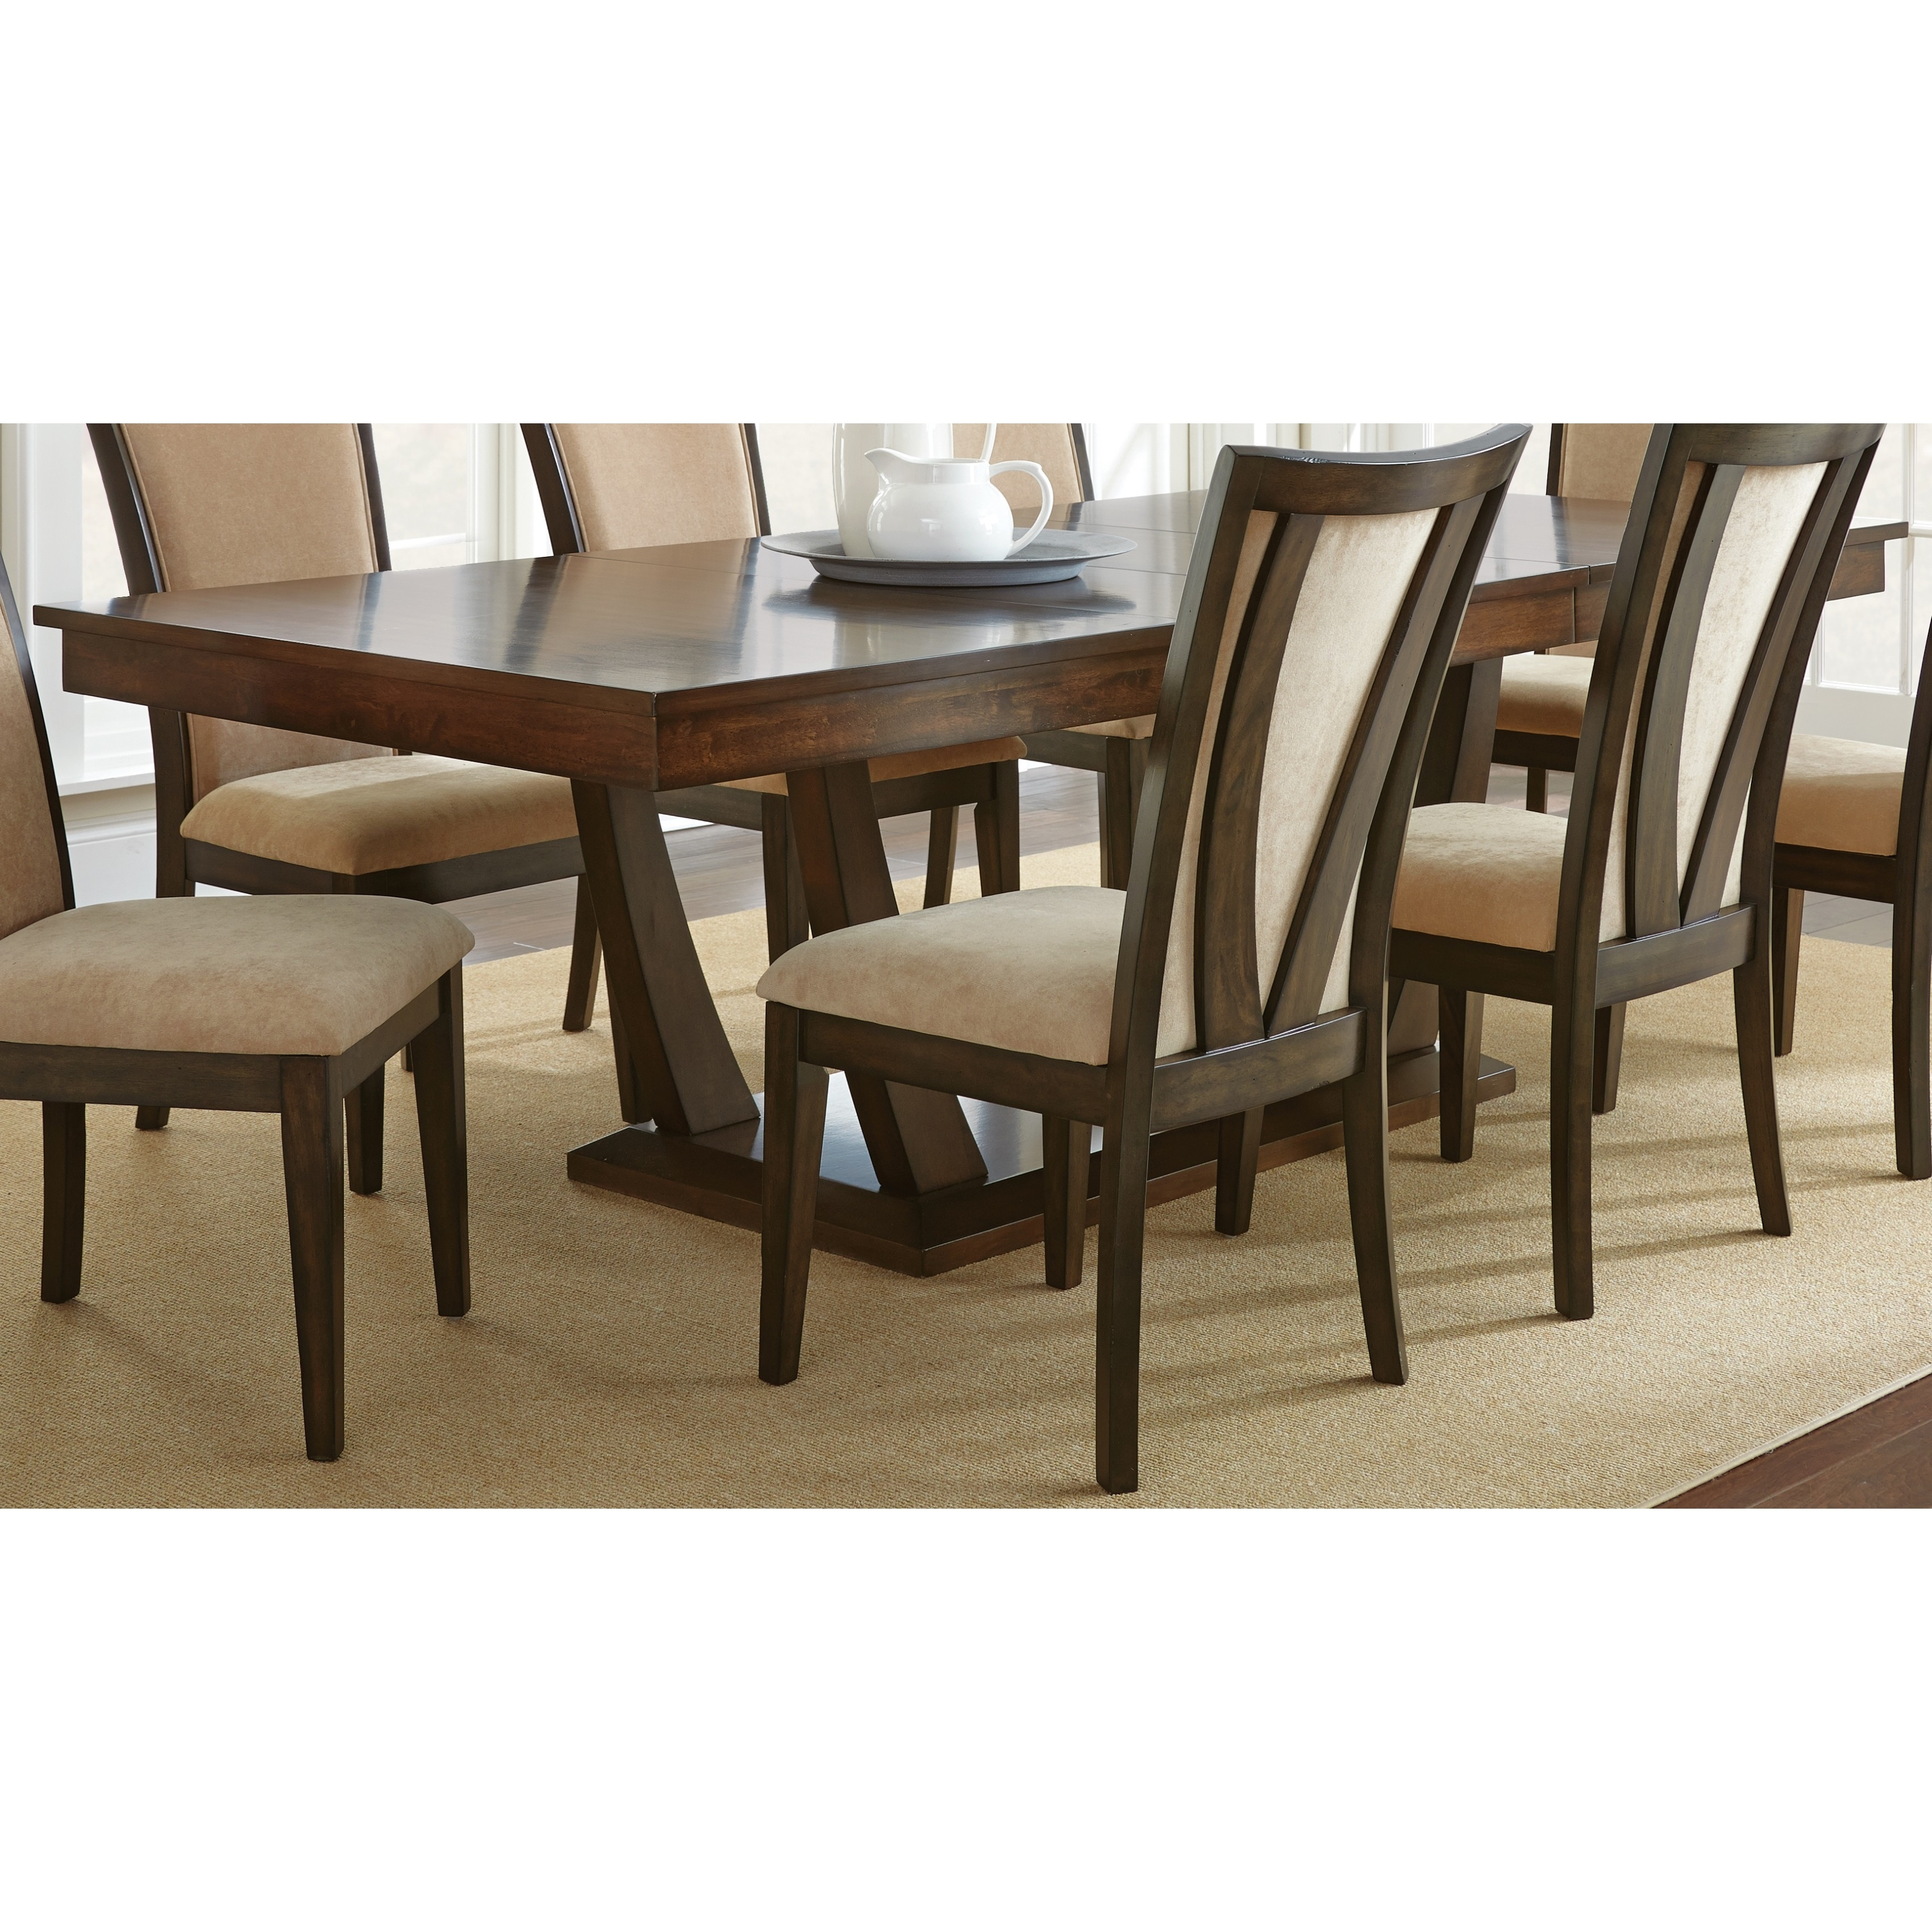 Gillian 8 Foot Pedestal Dining Table